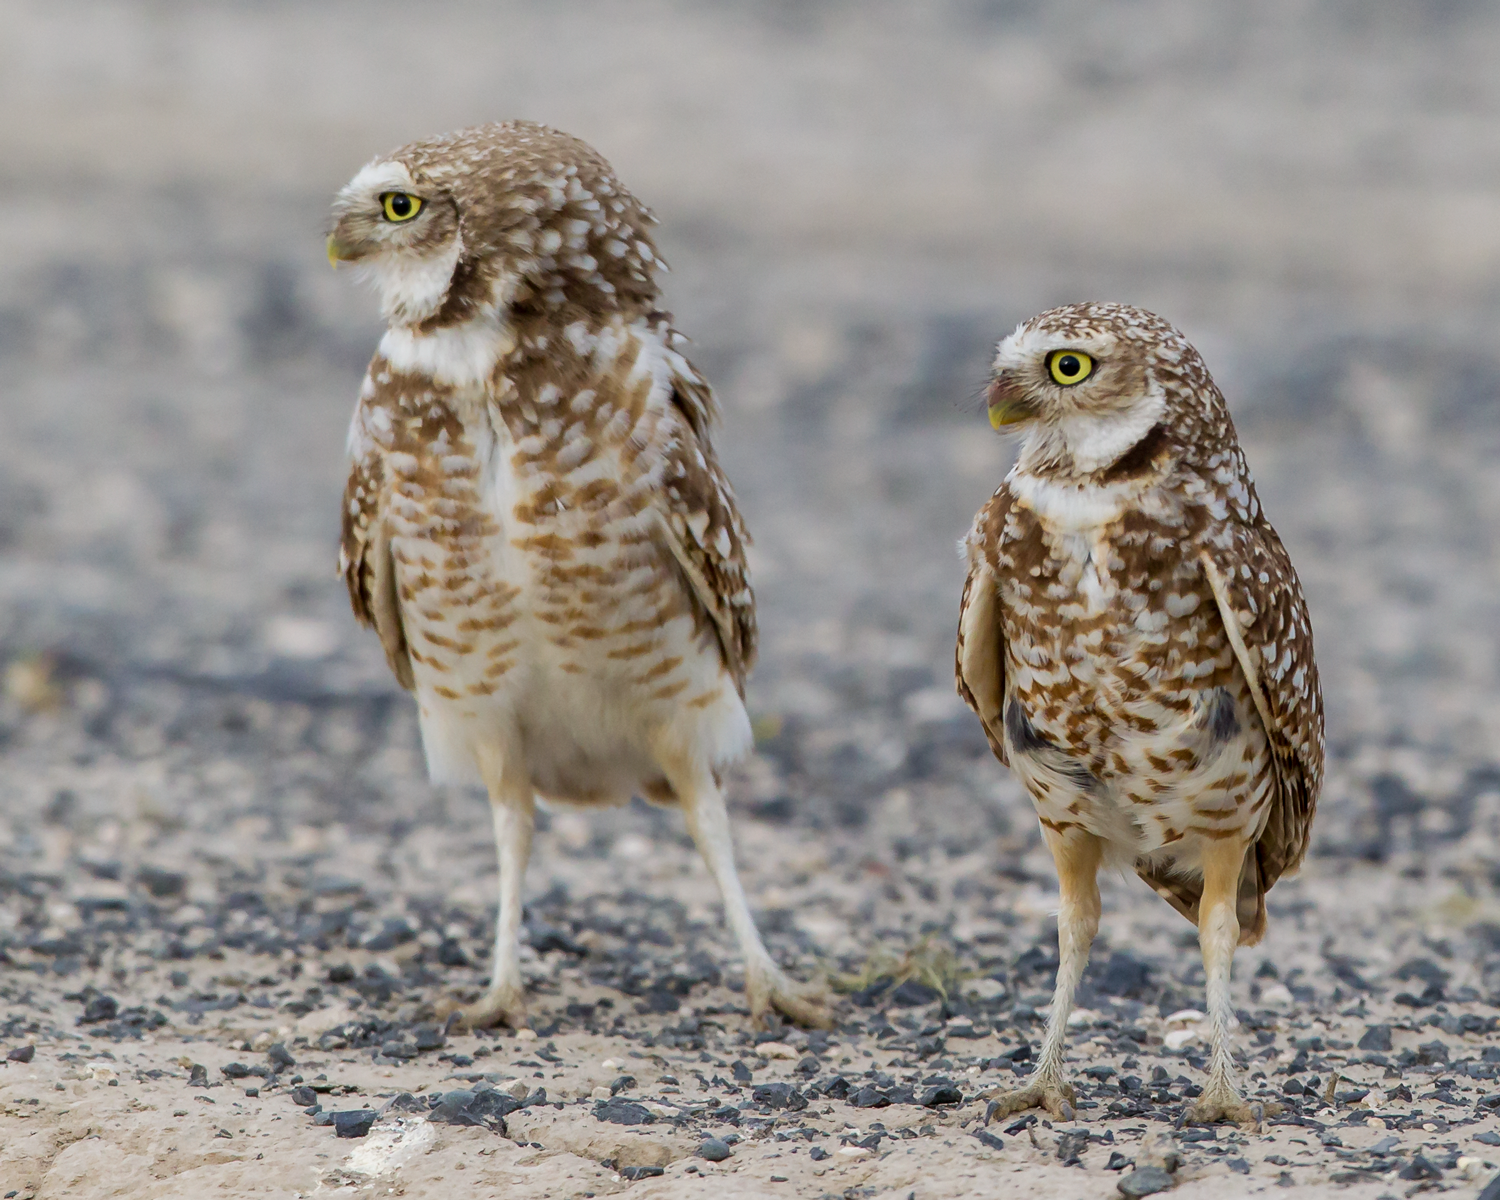 Athene-cunicularia-(Burrowing-Owl,-Chevêche-des-terriers)-male(left)-female(right).png